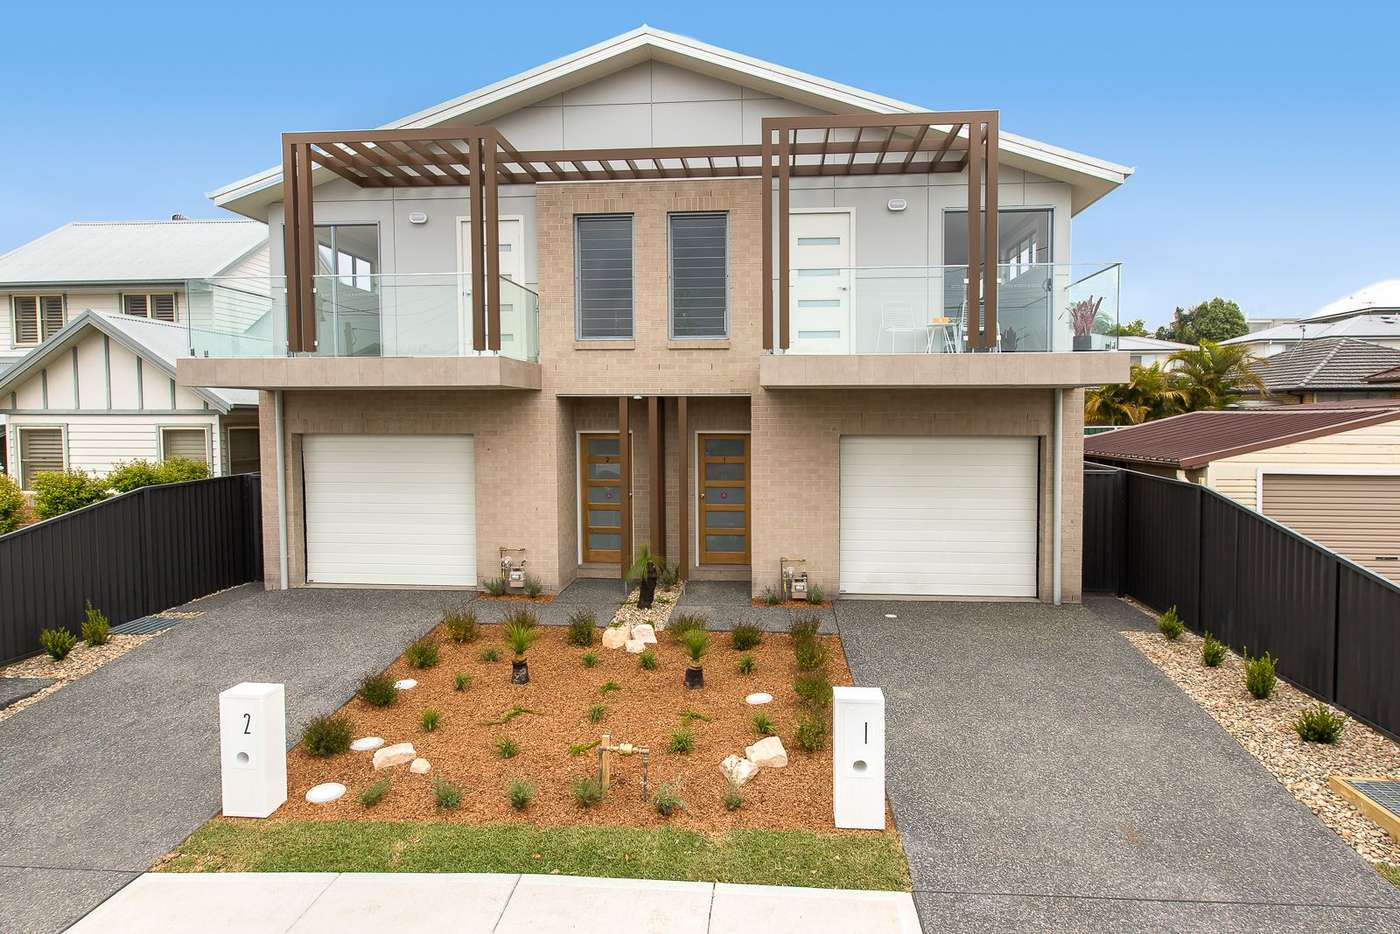 Main view of Homely townhouse listing, 1-2 30 Fleet Street, New Lambton NSW 2305